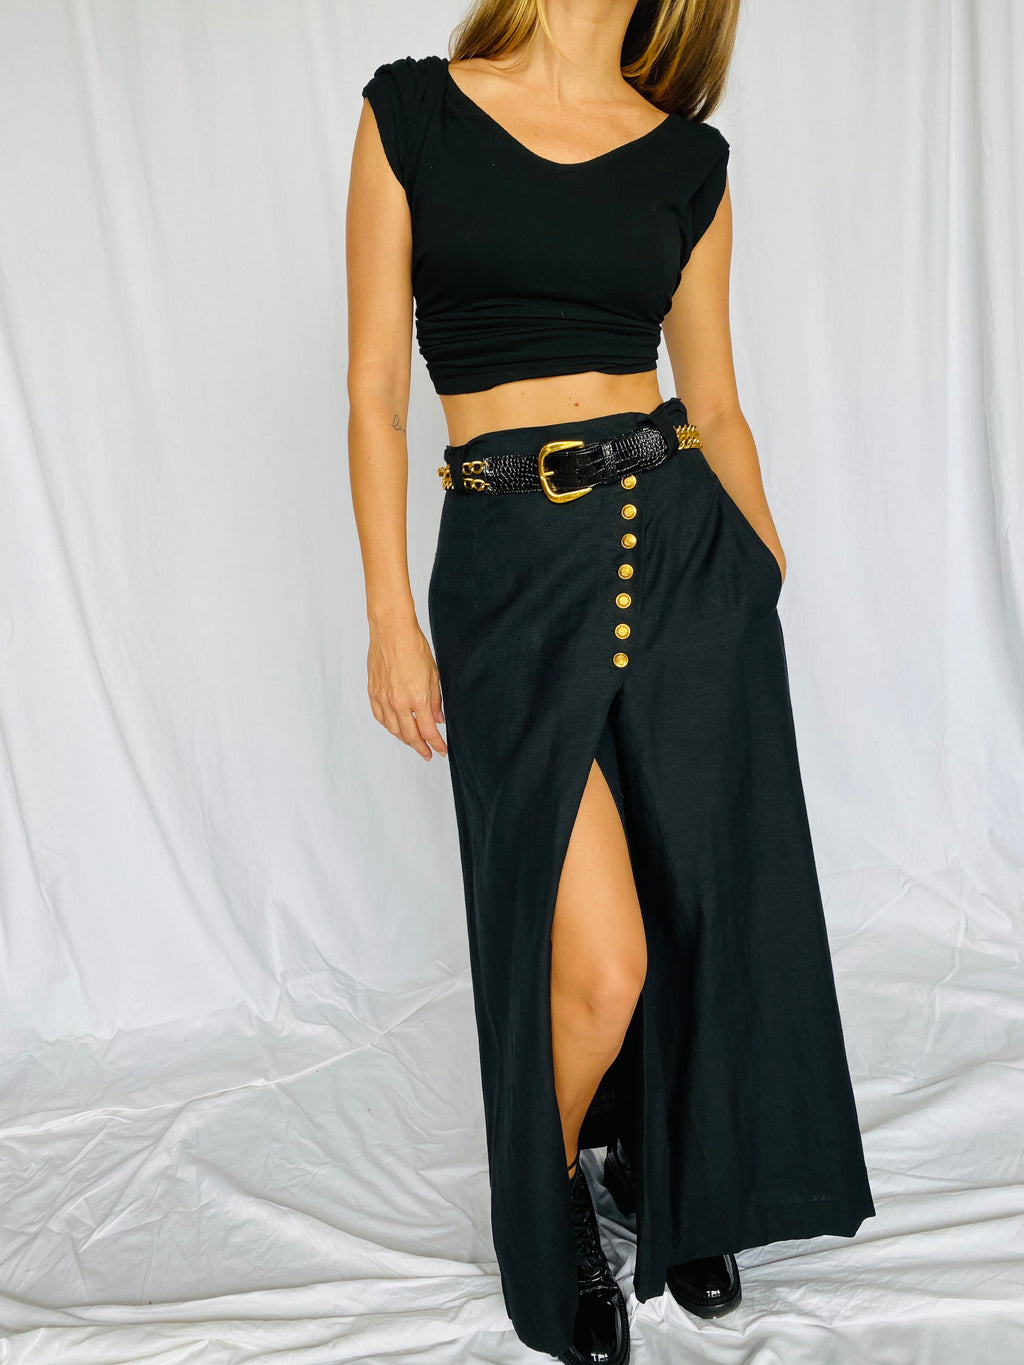 Neiman Marcus 90s Black Gold Wrap Belted Slit Skirt 6